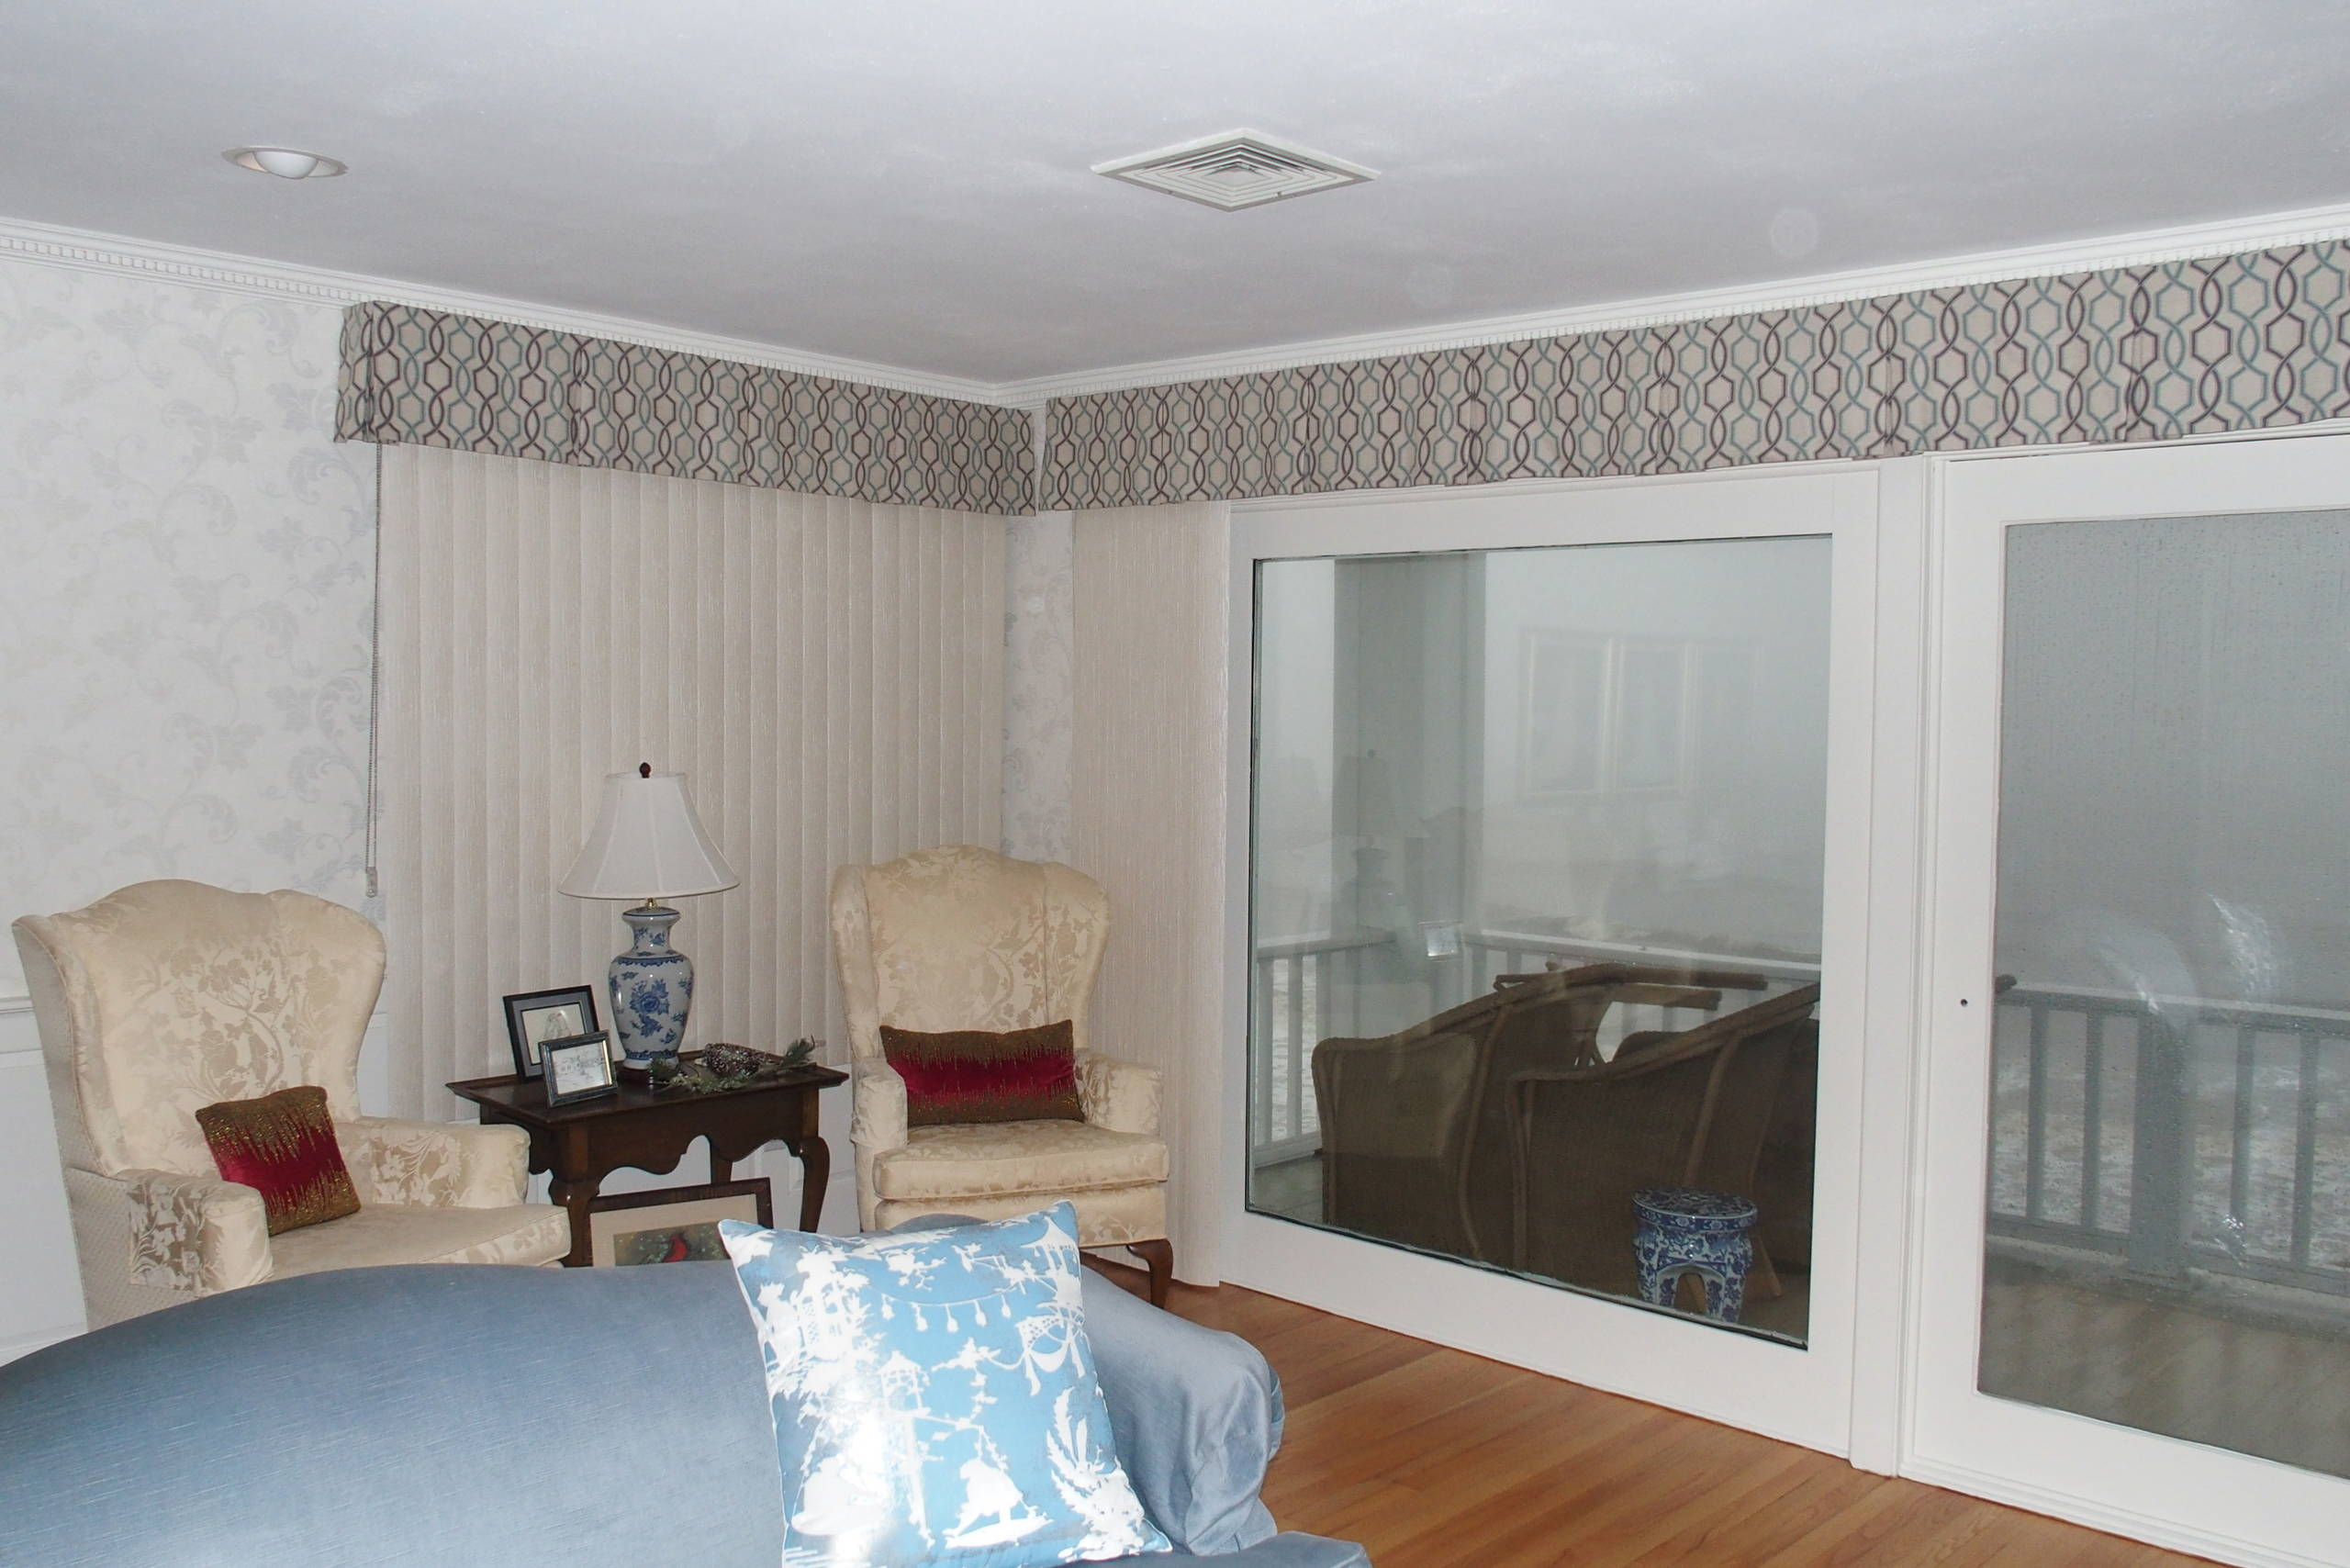 Box Pleat Valances on large windows by the water